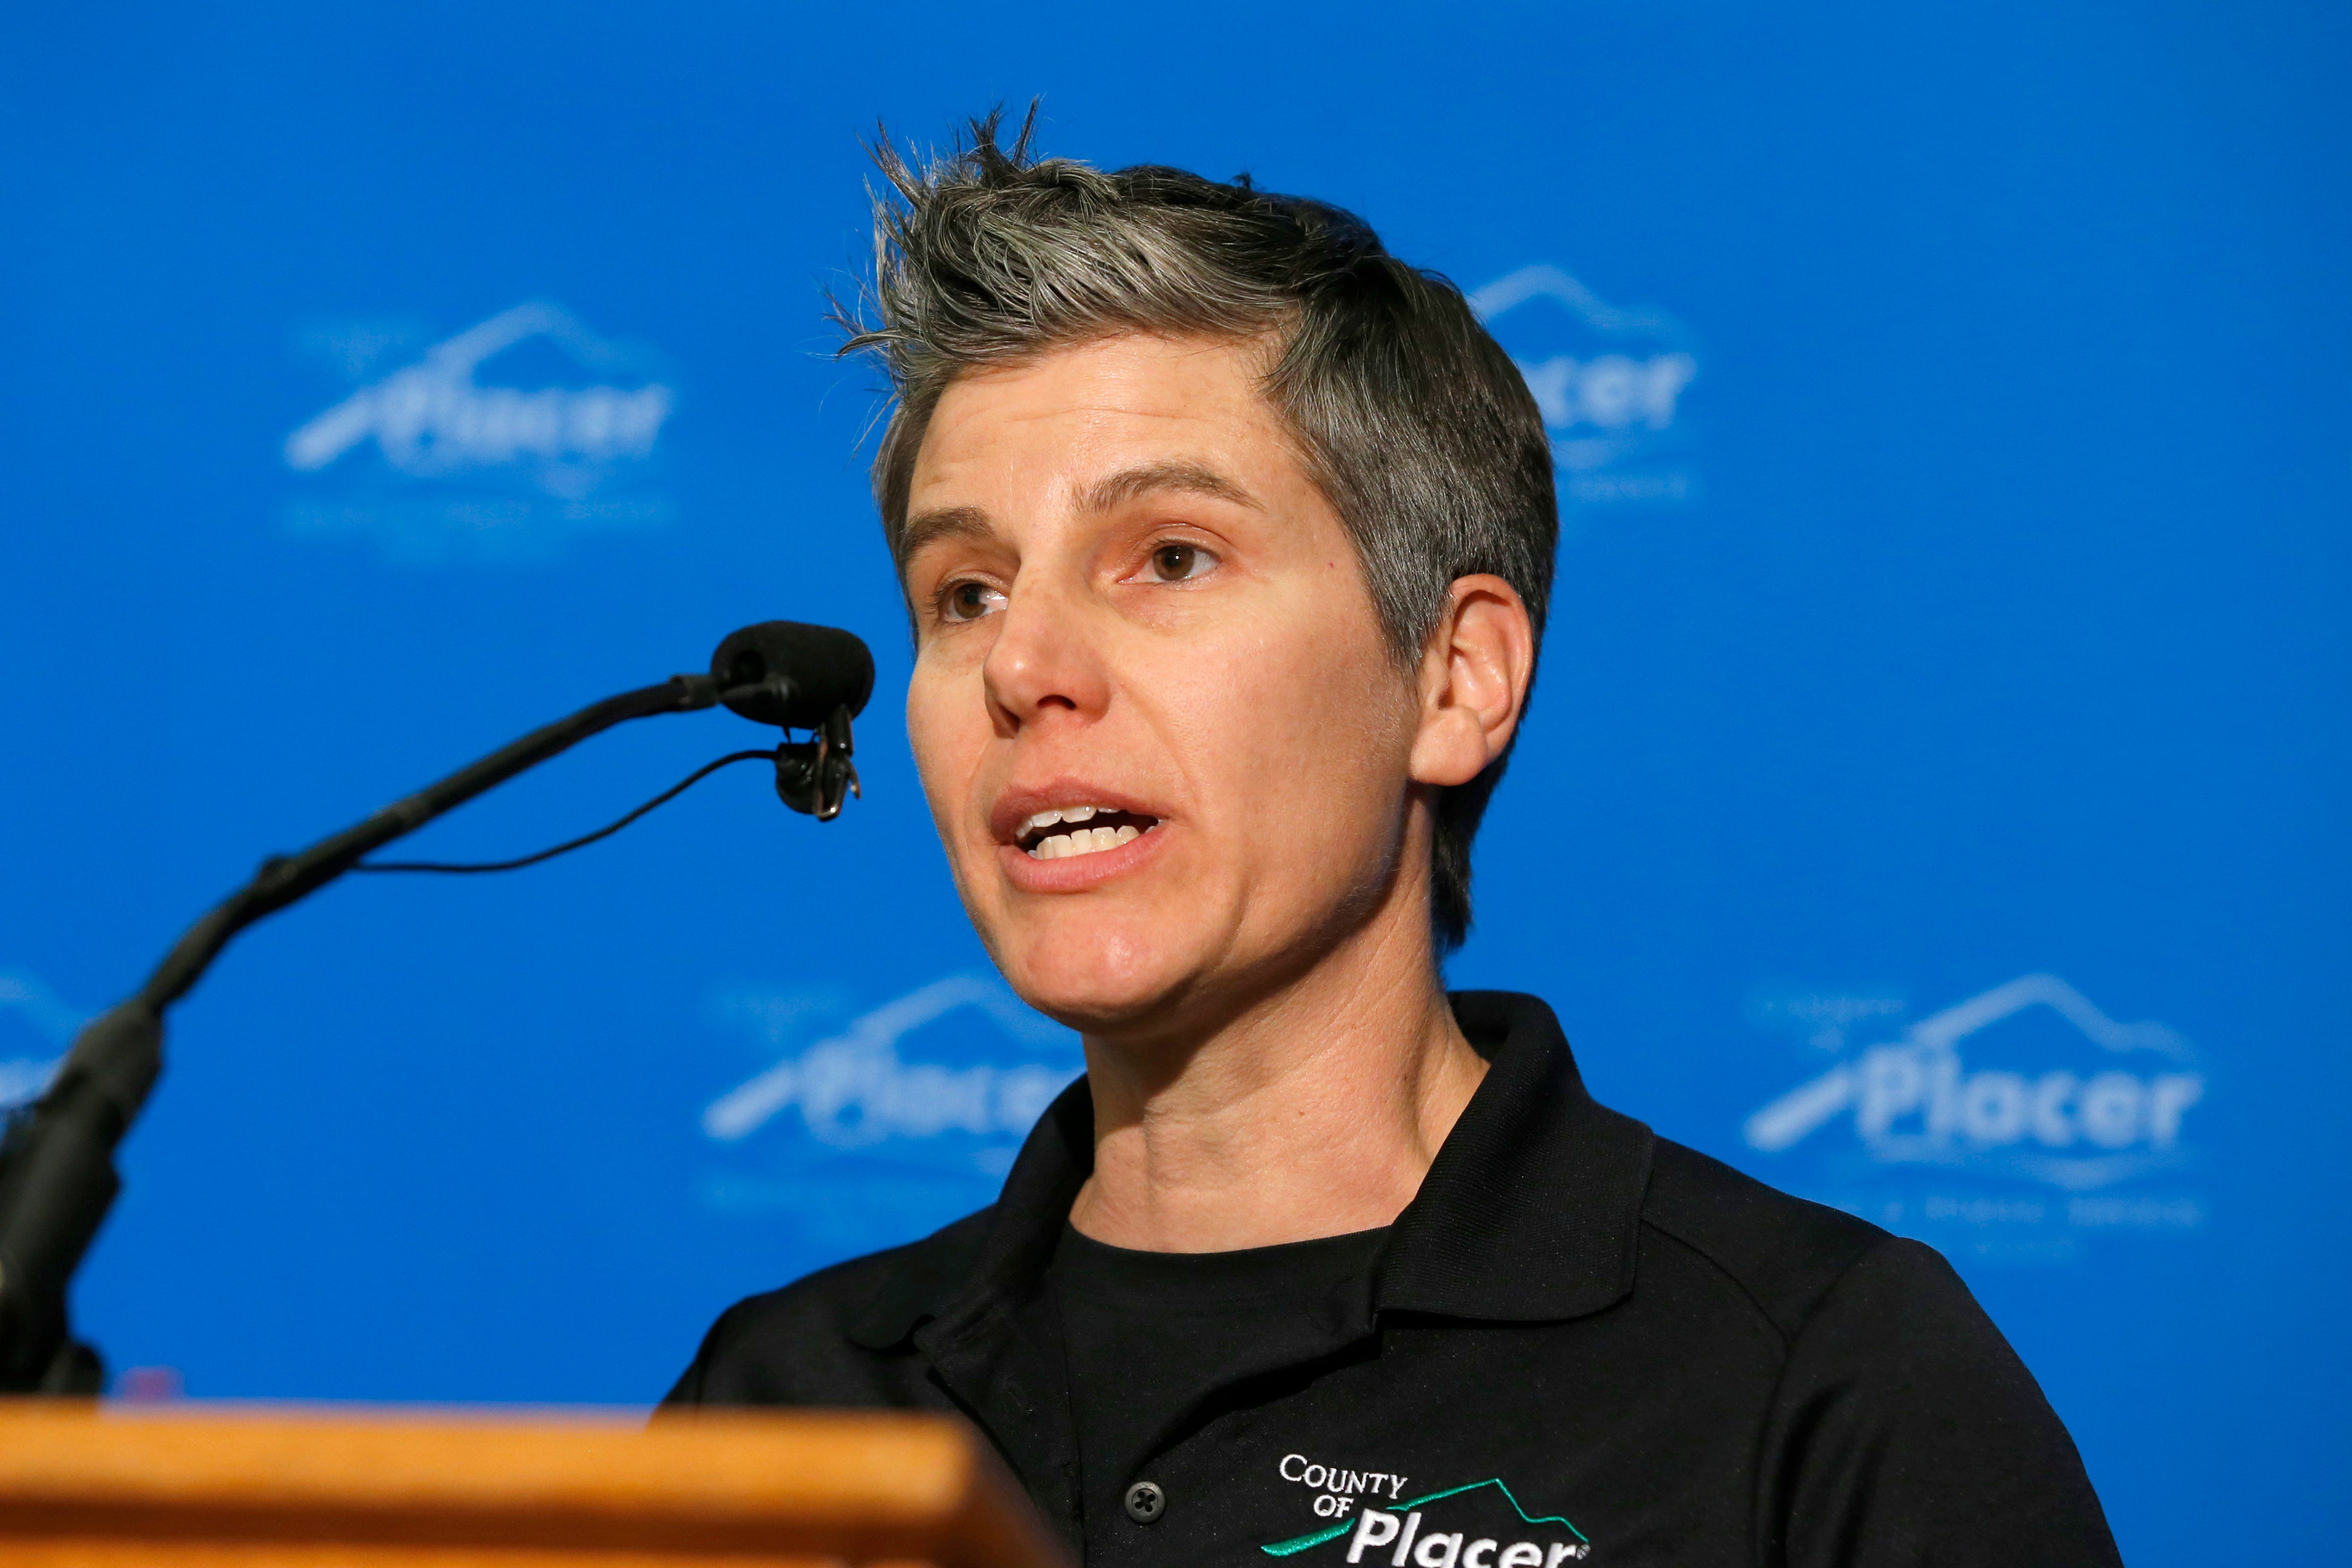 In California, Placer County Public Health Officer Aimee Sisson was urged by a CDC official to soften her public warning about the coming community spread of coronavirus. Sisson resigned after the Board of Supervisors lifted its emergency order against her advice.